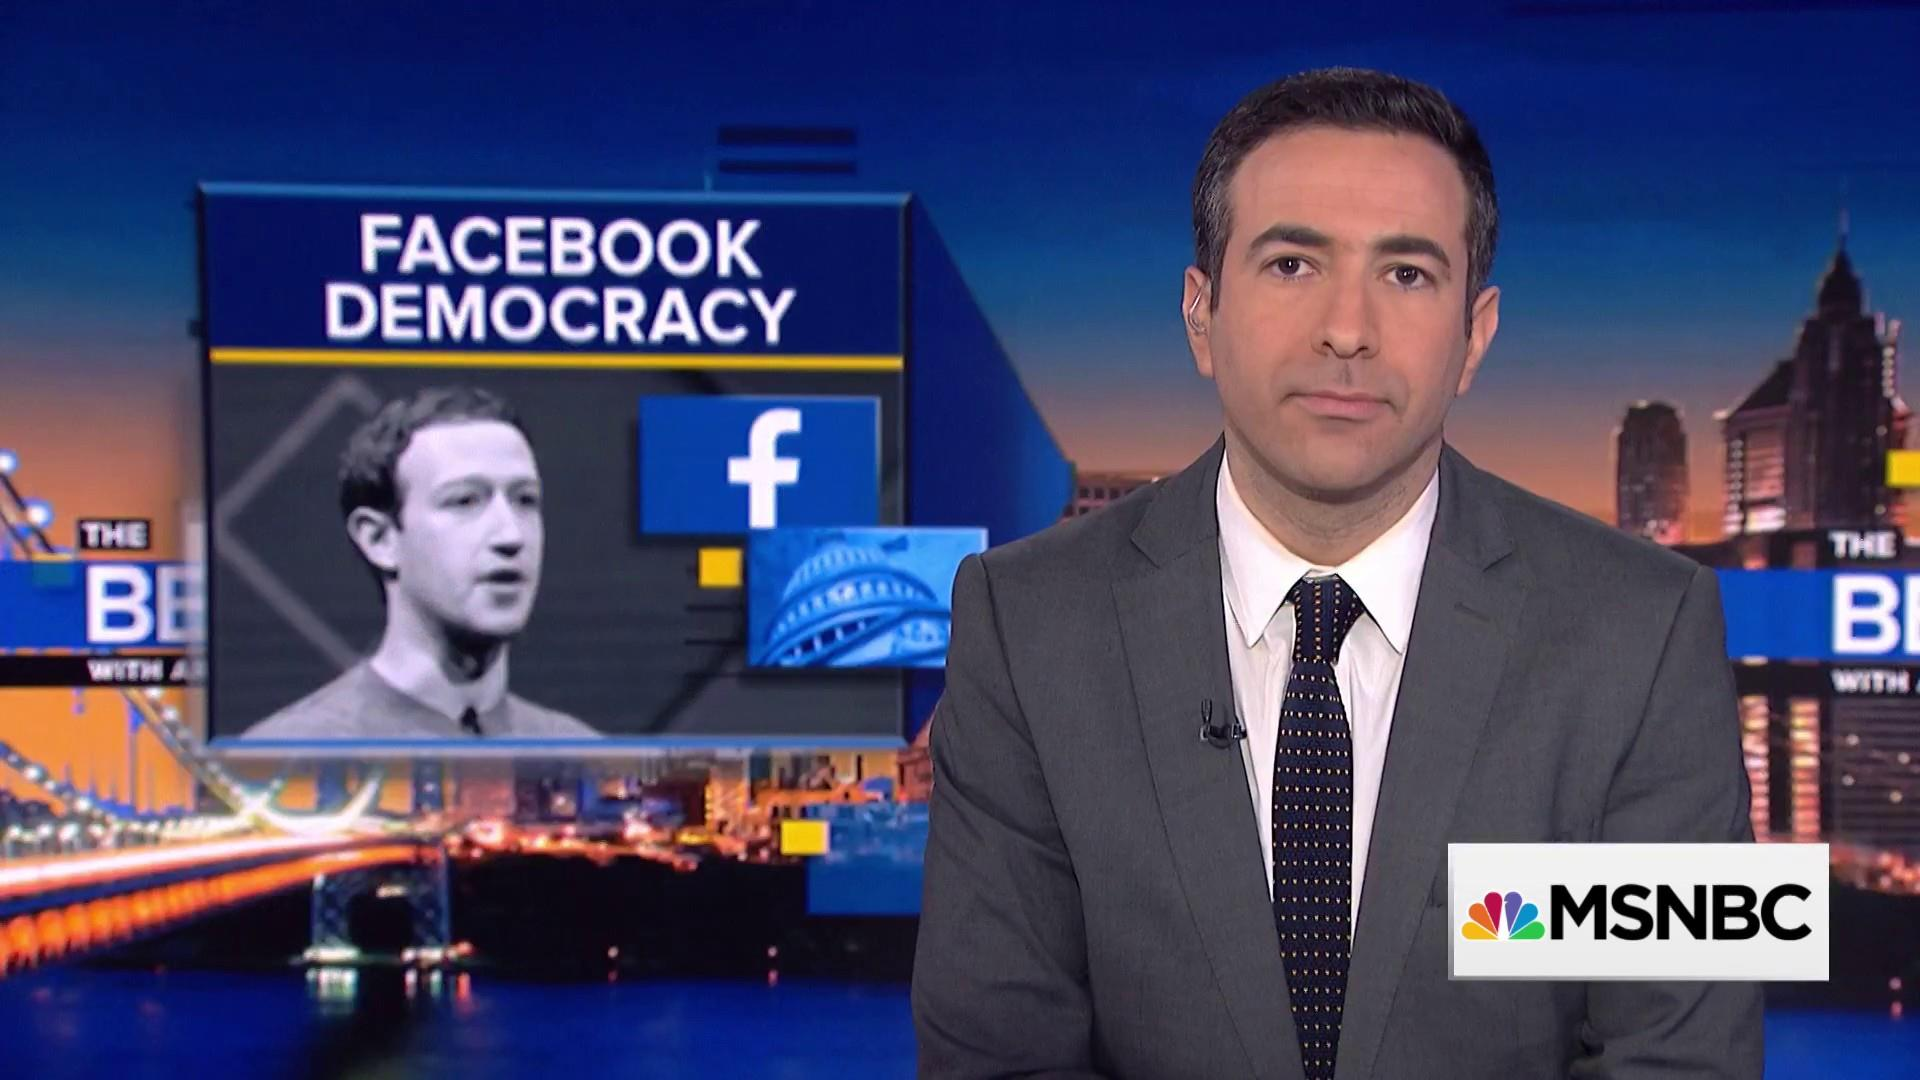 Watch Zuckerberg go from denial to apology amidst Facebook scandal